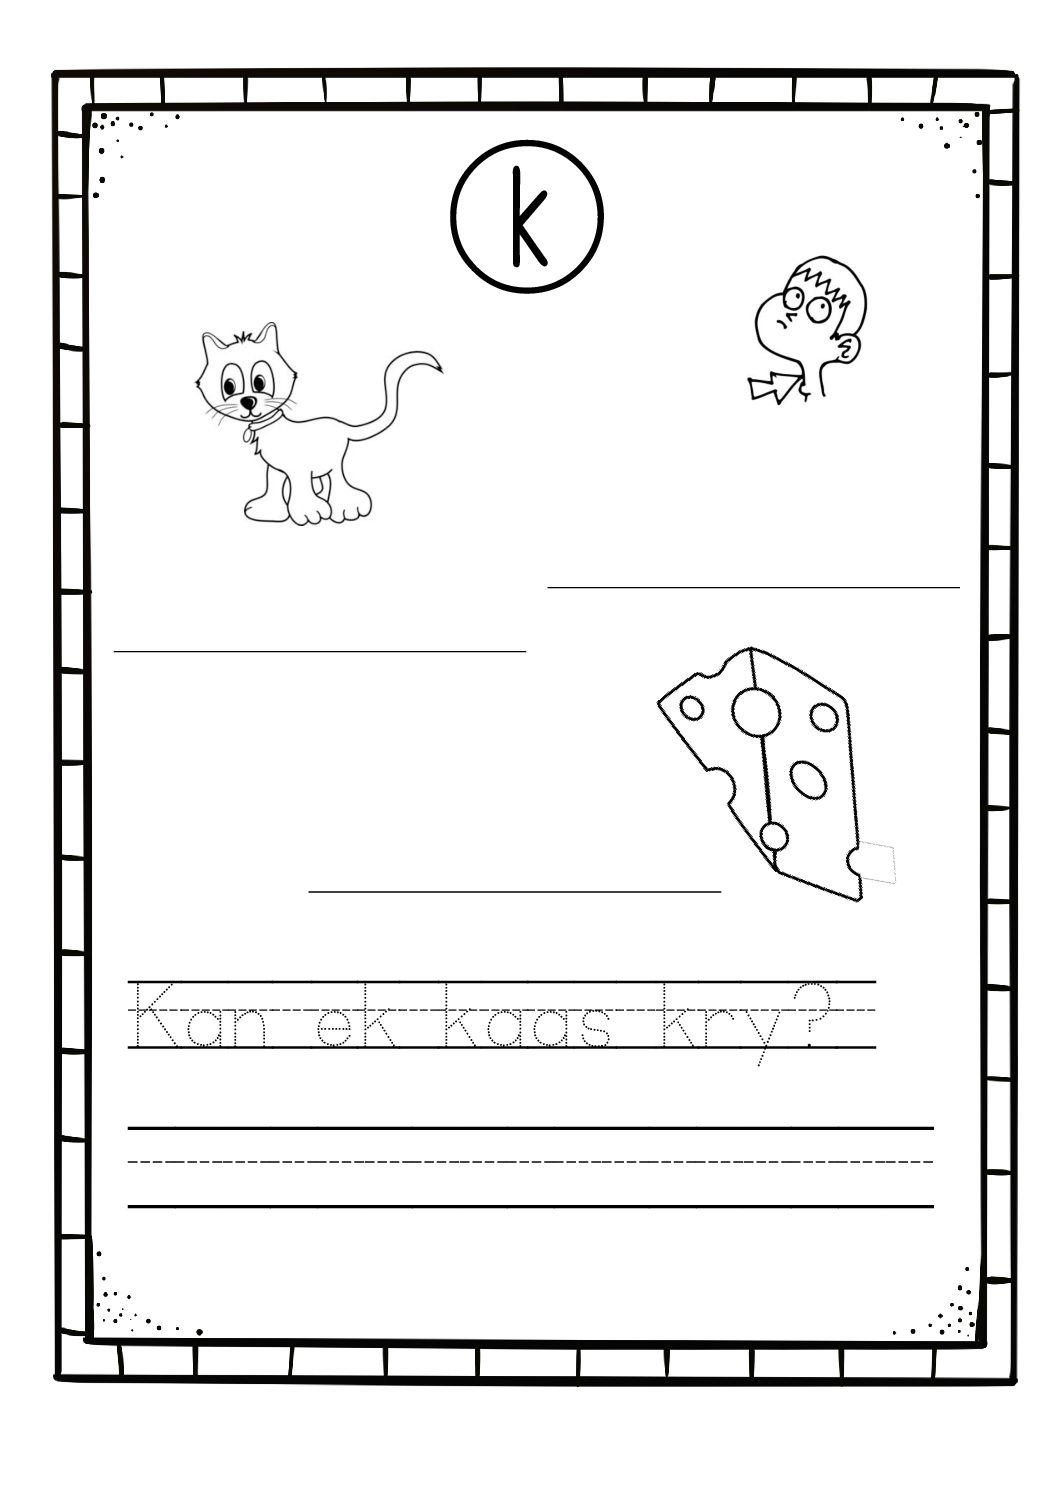 Grade 1 Afrikaans Second Language Worksheets